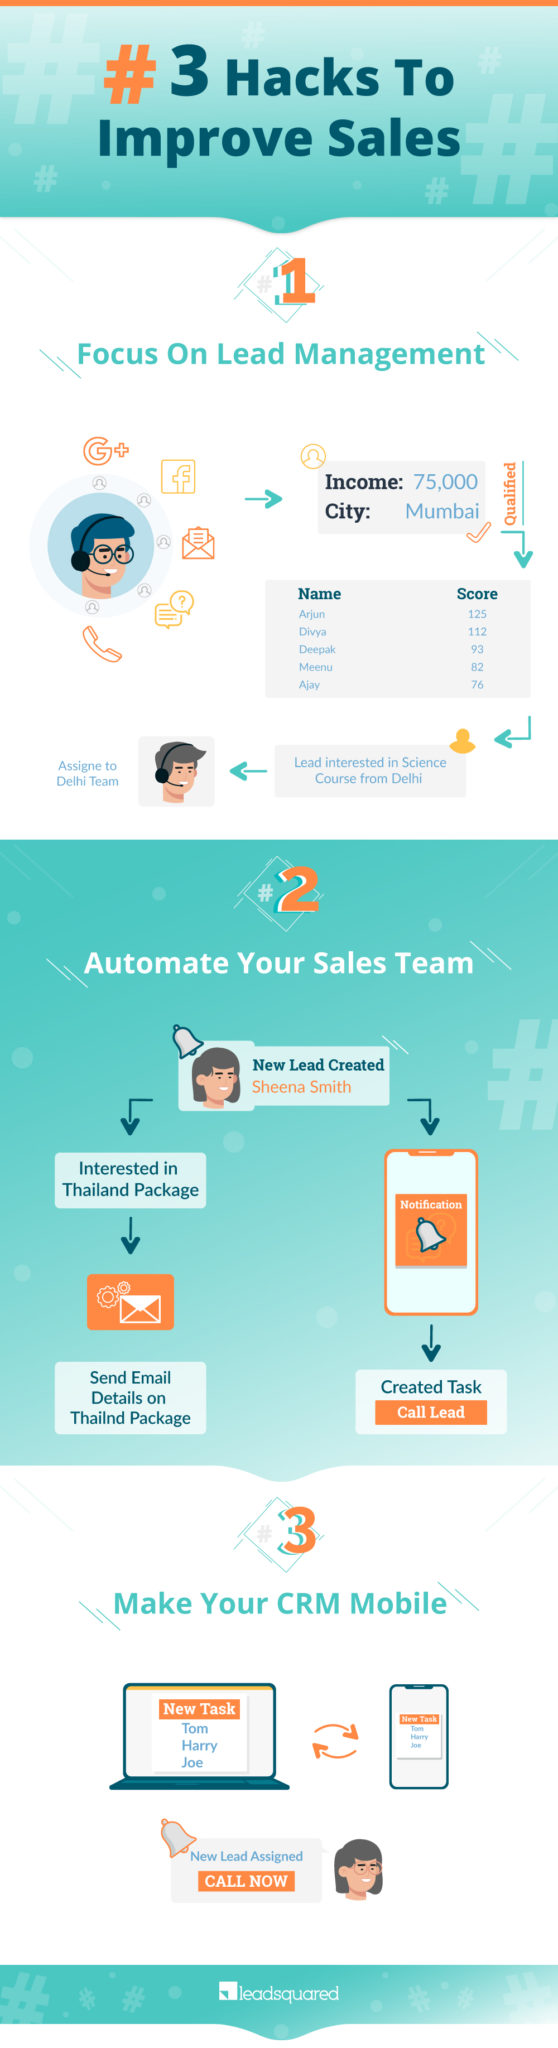 How to improve sales - infographic